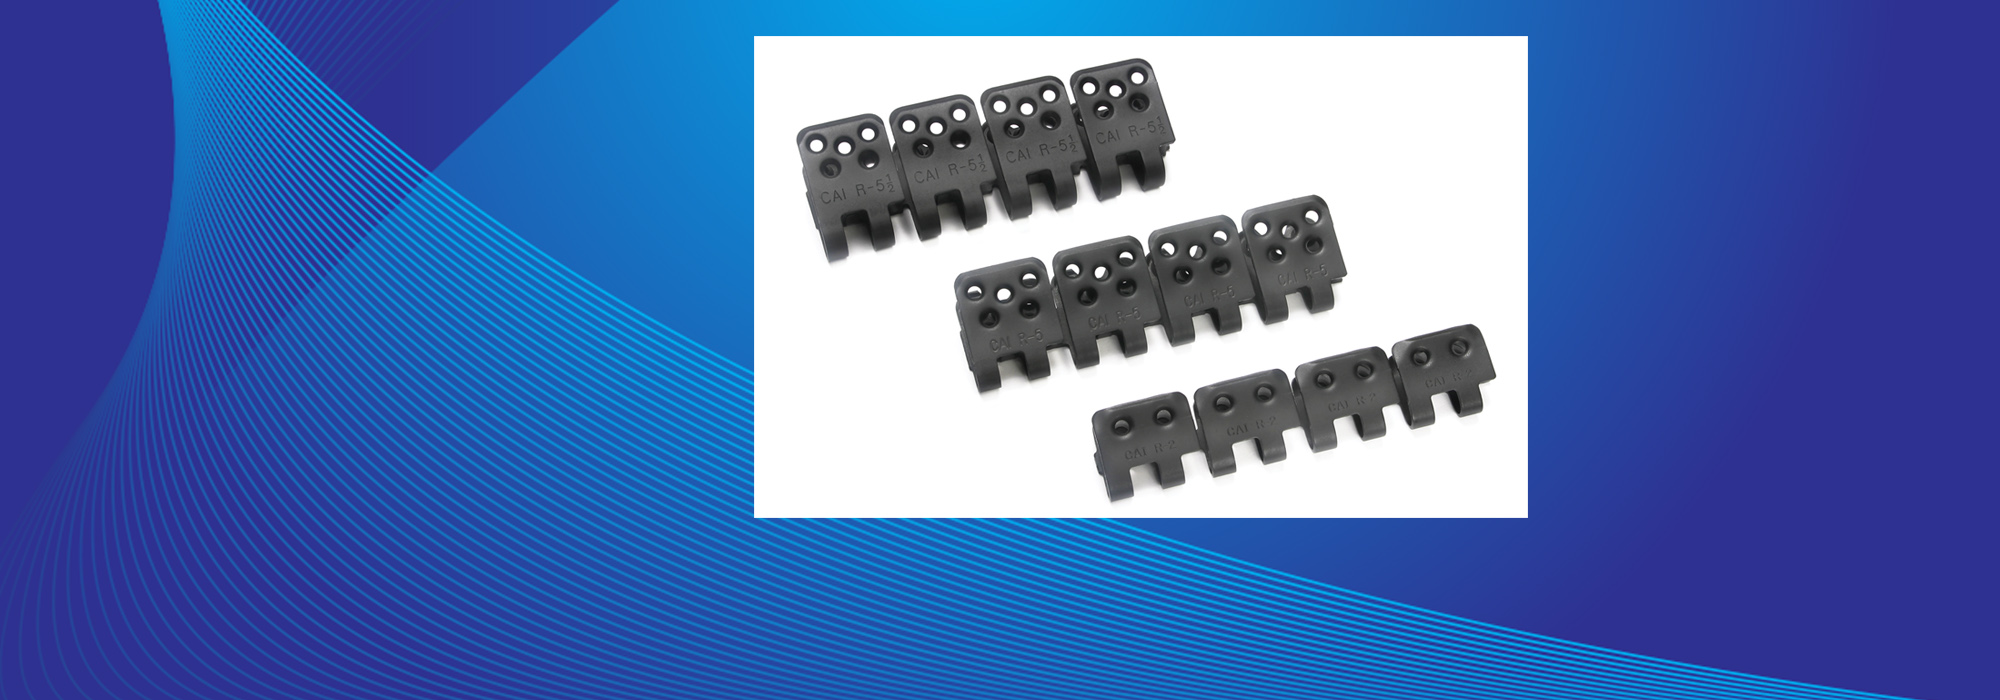 Durgard Riv-Nail Fasteners from Conveyor Accessories